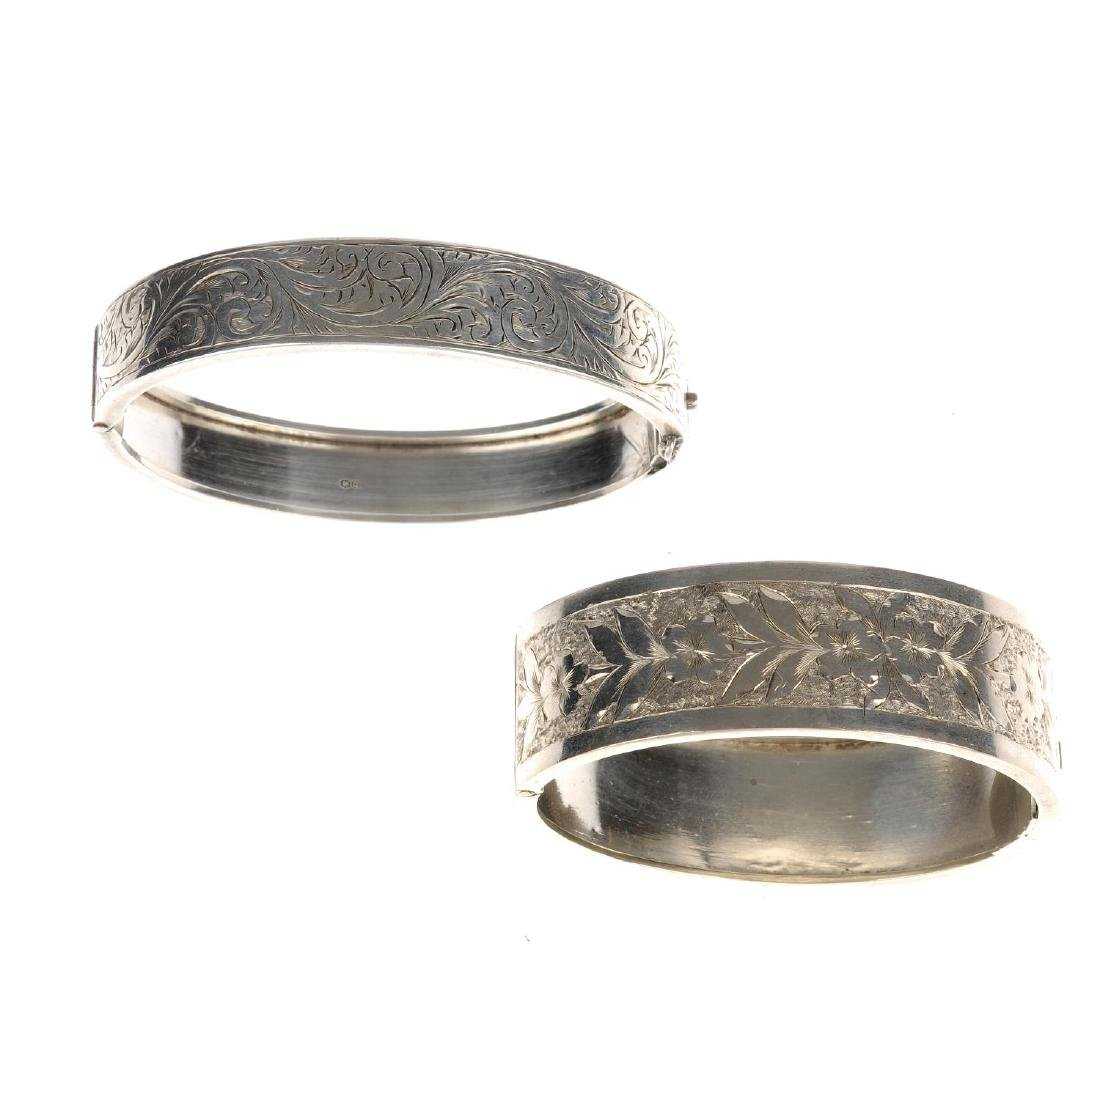 Two hinged bangles. The first a silver bangle with